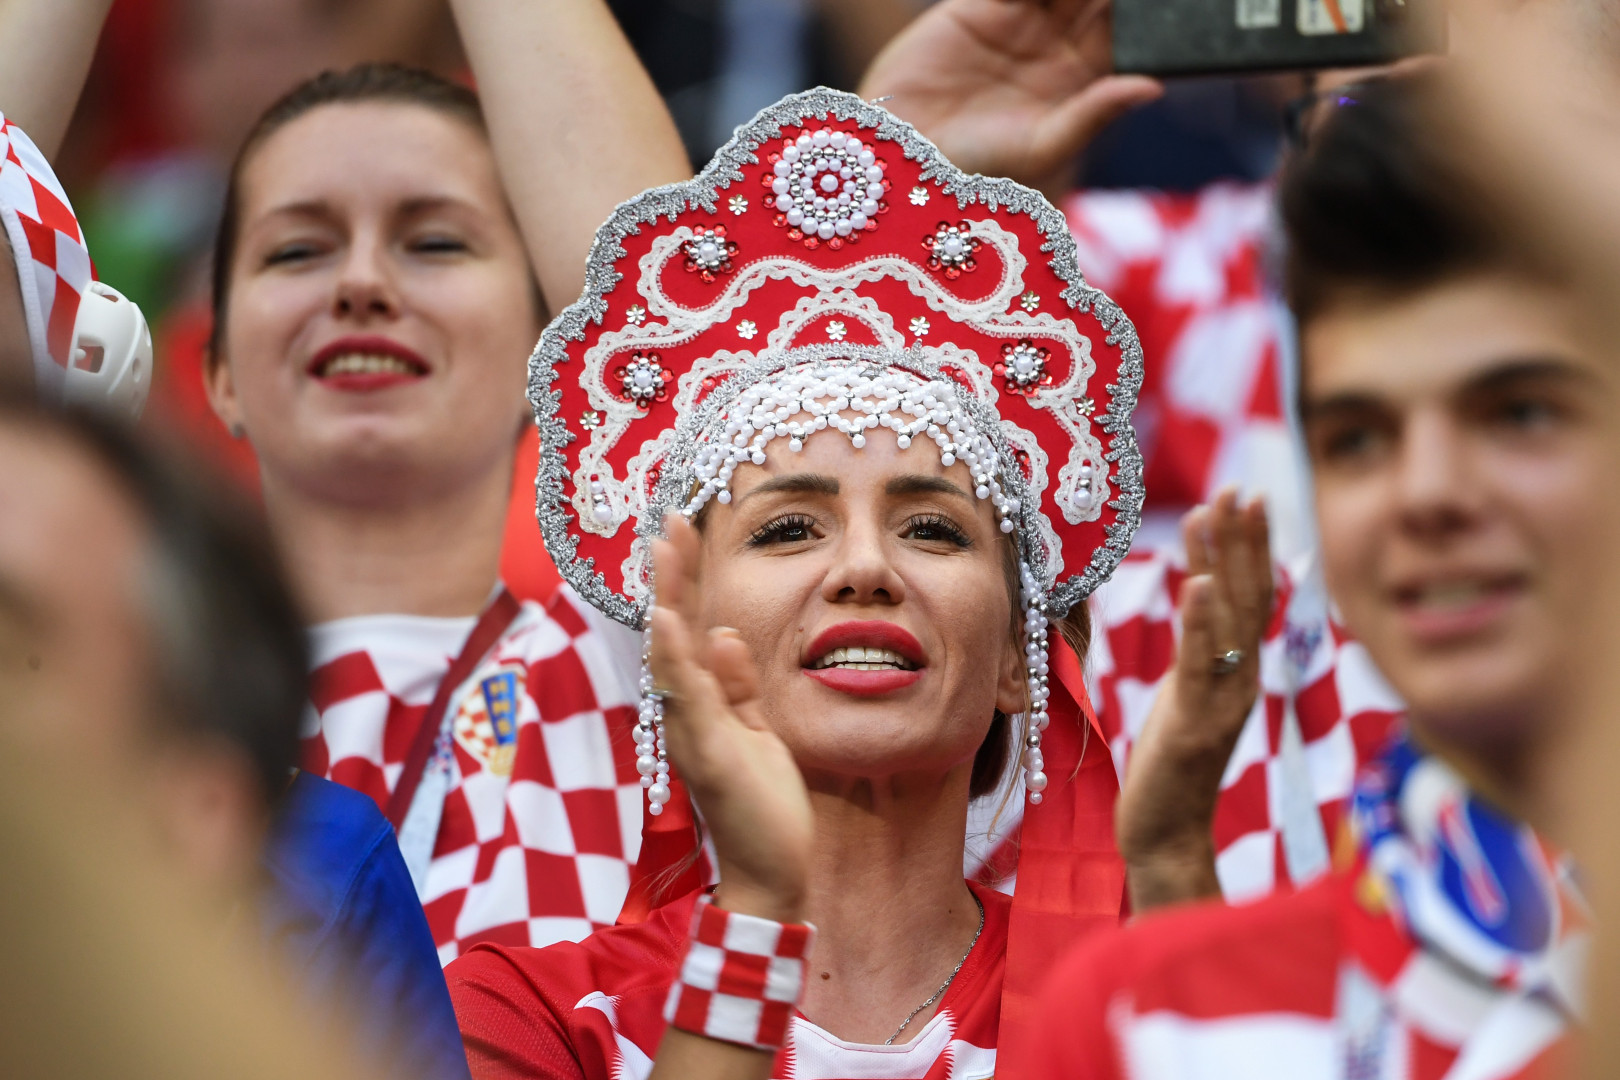 Une supportrice croate, le 11 juillet 2018 à Moscou